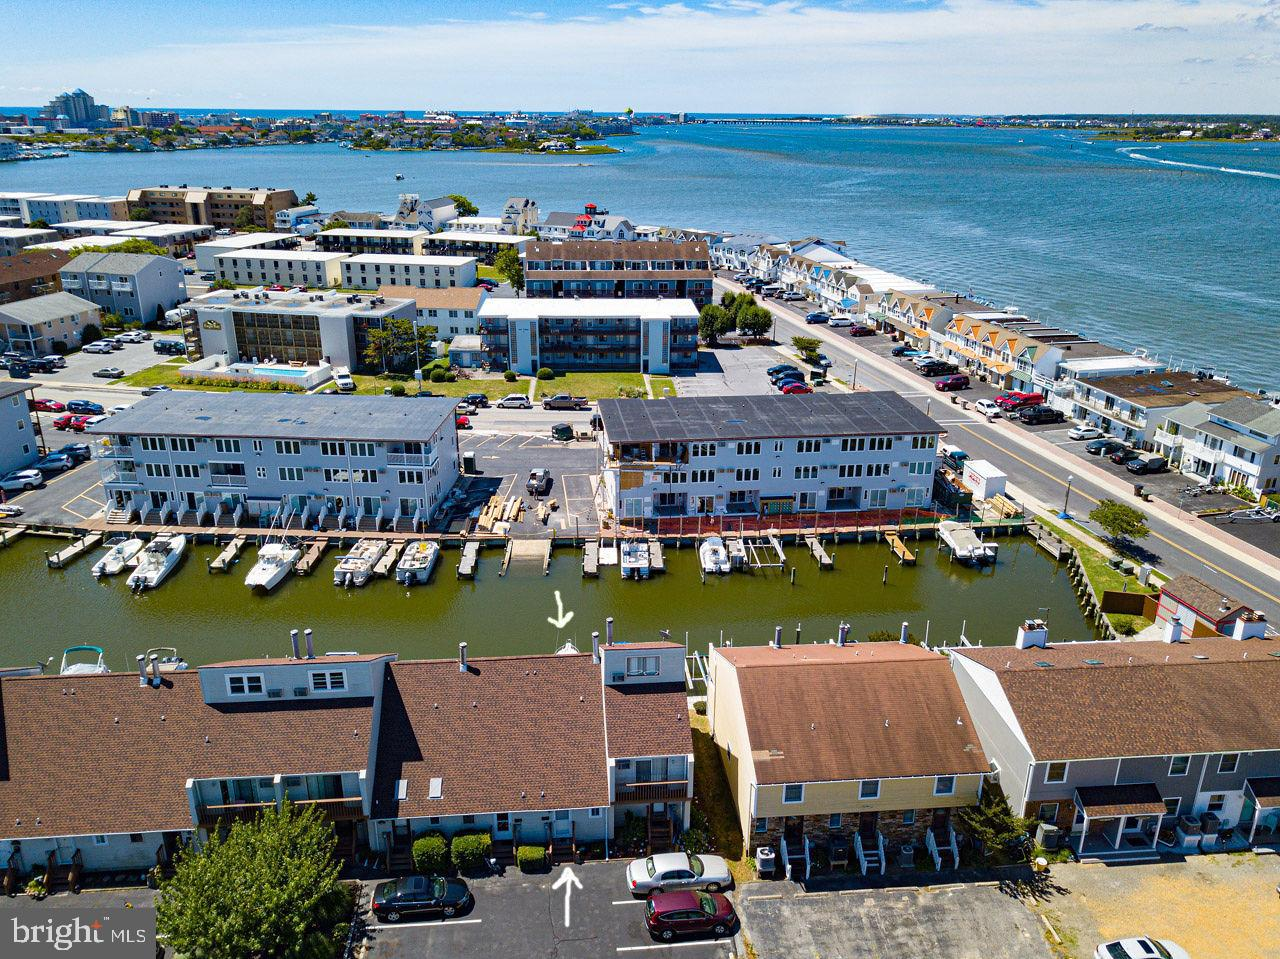 A SUPER BUY WITH SLIP!!     SUPER CUTE UPDATED WATERFRONT w/ its own  boat slip... Turn Key & Fully Furnished!  Great Location on Cul-de-sac  On a Quiet Road no through Traffic.  Perfect Water Access to all the good spots in town... 1 BR/1.5 BA  Completely  rehabbed  in 2014/2015.  New Flooring - New Custom Kitchen , Bathrooms Updated. New Sliding Doors &  Window. Wood Burning FP, New Interior 6 Panel Doors - New Deck & Balcony - New Remote Control Awning w/LED Lights, Wind Sensor & Roll Up Privacy Shade... Extra Bed in a Separate Loft Area and newer Sleep Sofa in Living Room.(can actually sleep 6 people)  Everything Updated in entire townhouse &  In  Great Condition. Only an small 10 unit building!  Plus New Roof - New Boardwalk - THIS IS THE PLACE FOR YOU!  BONUS...  SUPER LOW CONDO FEES!!All you need to do is bring your summer gear & your boat!  Close to many restaurants, boardwalk, beach and amusement park! If you buy now, be ready for lots of summer fun!